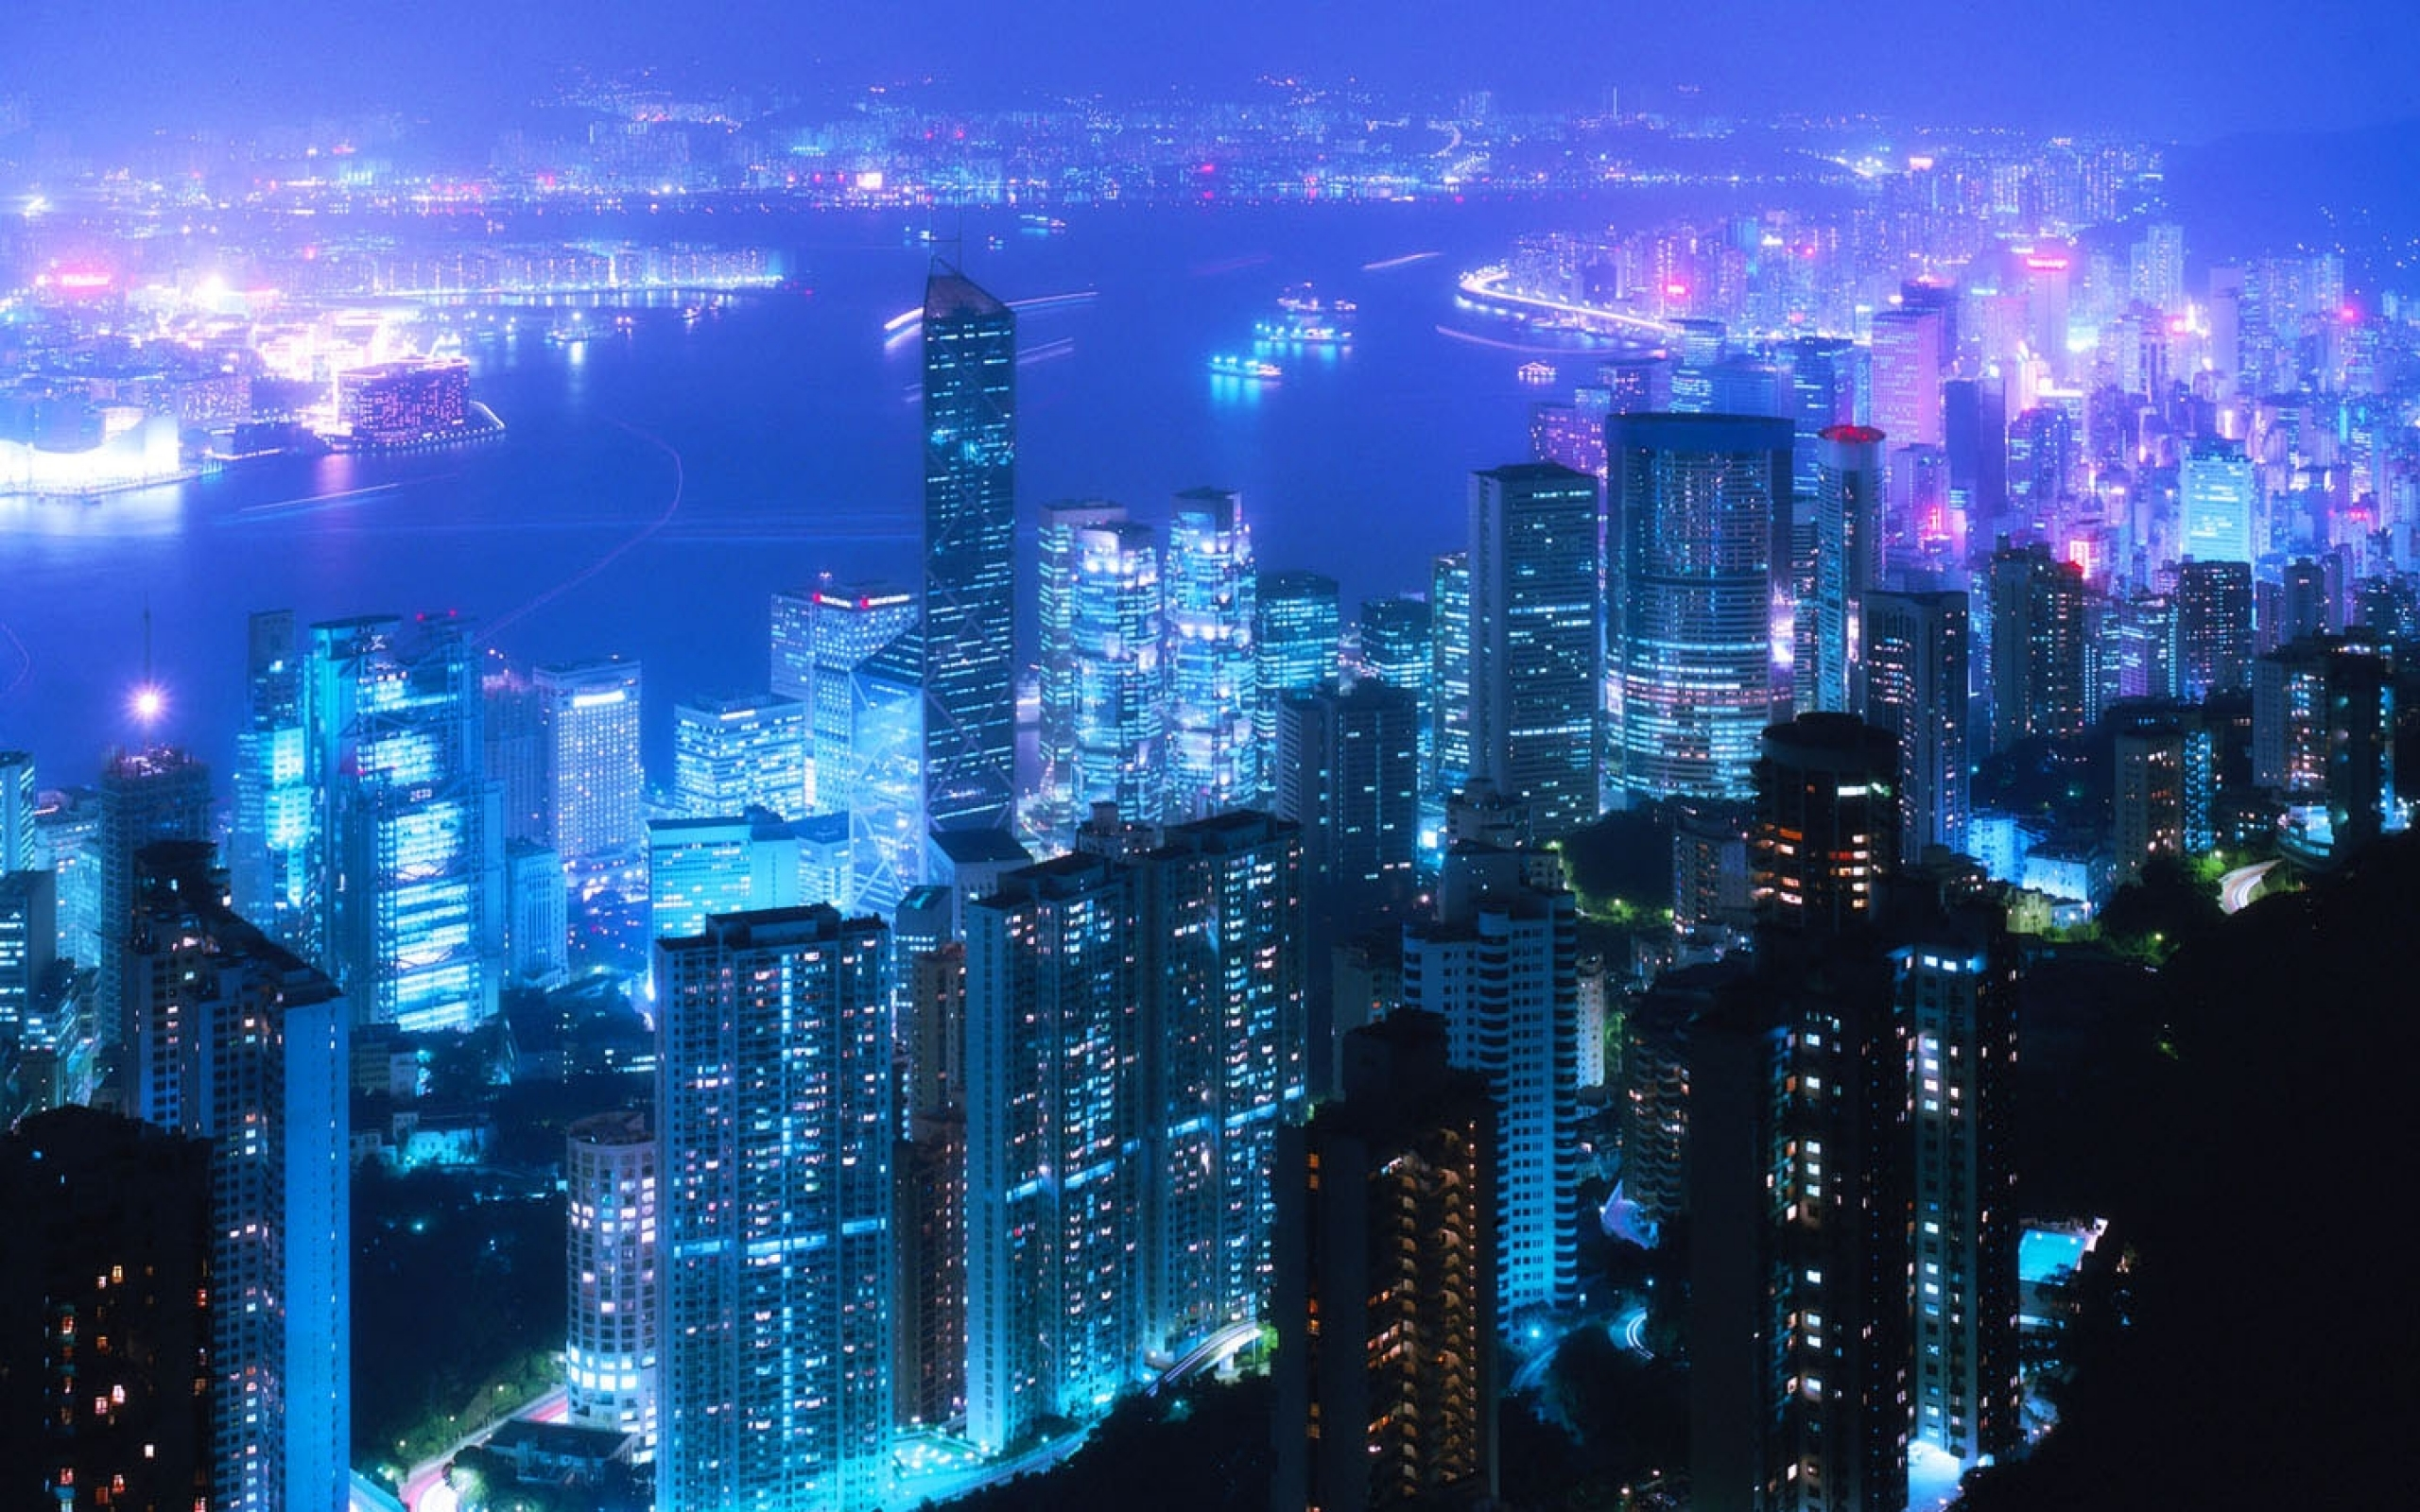 hong kong computer wallpapers desktop backgrounds 2560x1600 id